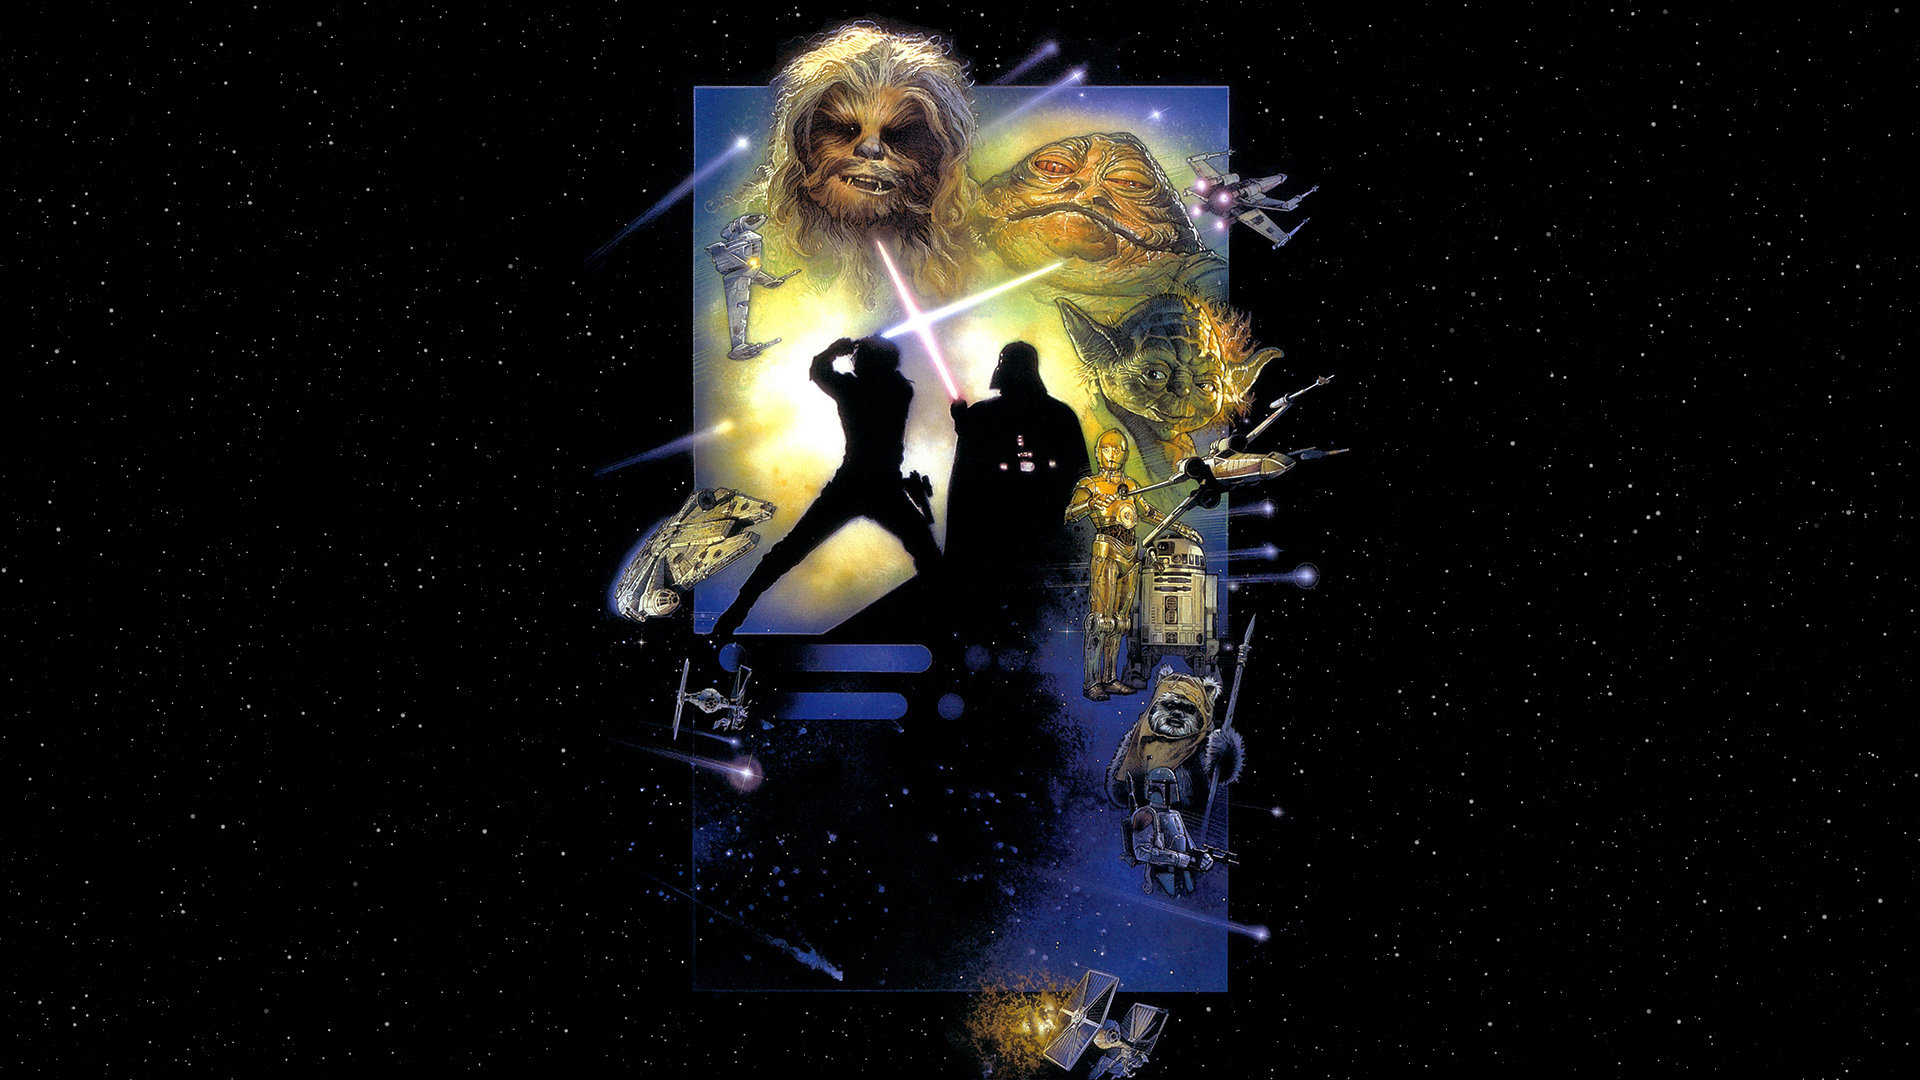 Free Download Star Wars Episode 6 Vi Return Of The Jedi